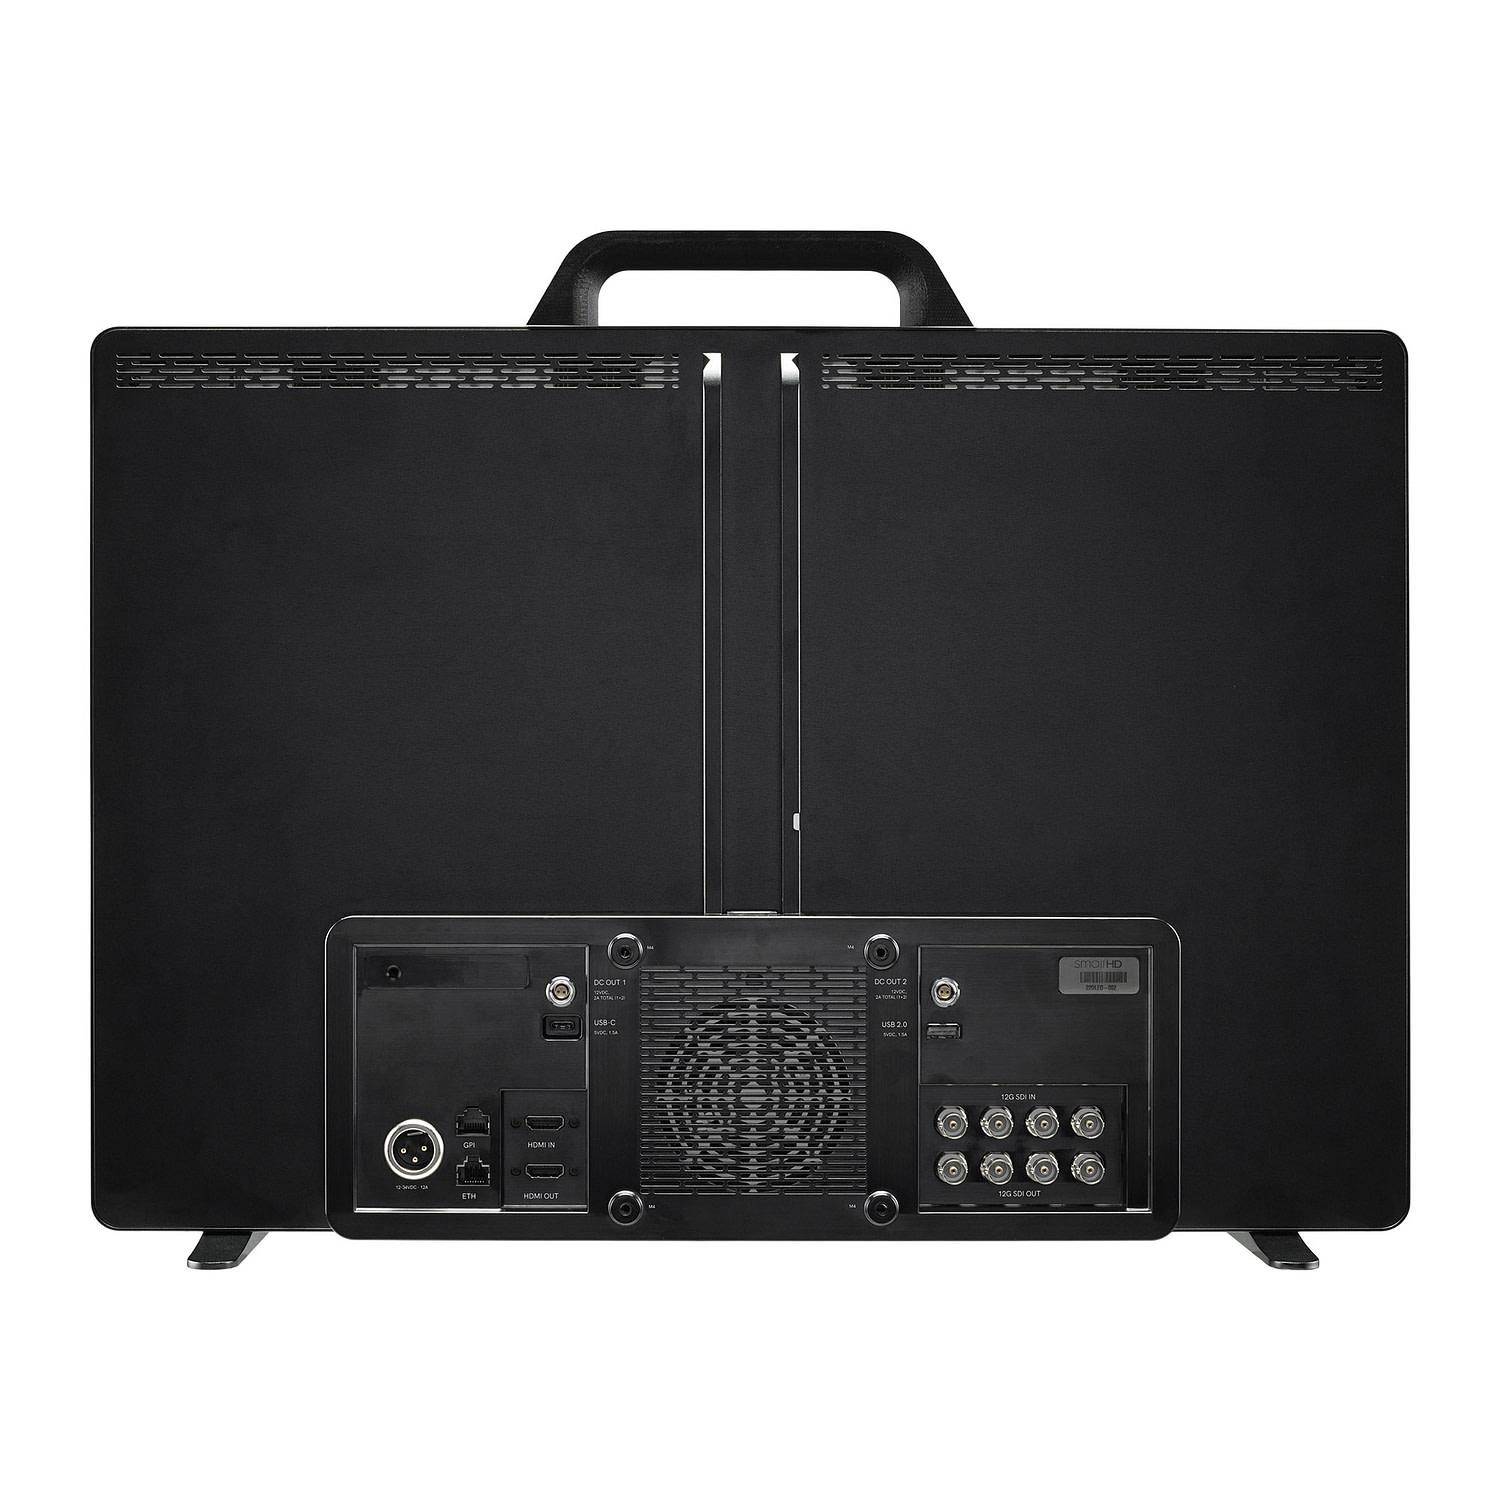 SmallHD OLED 22 - Connections